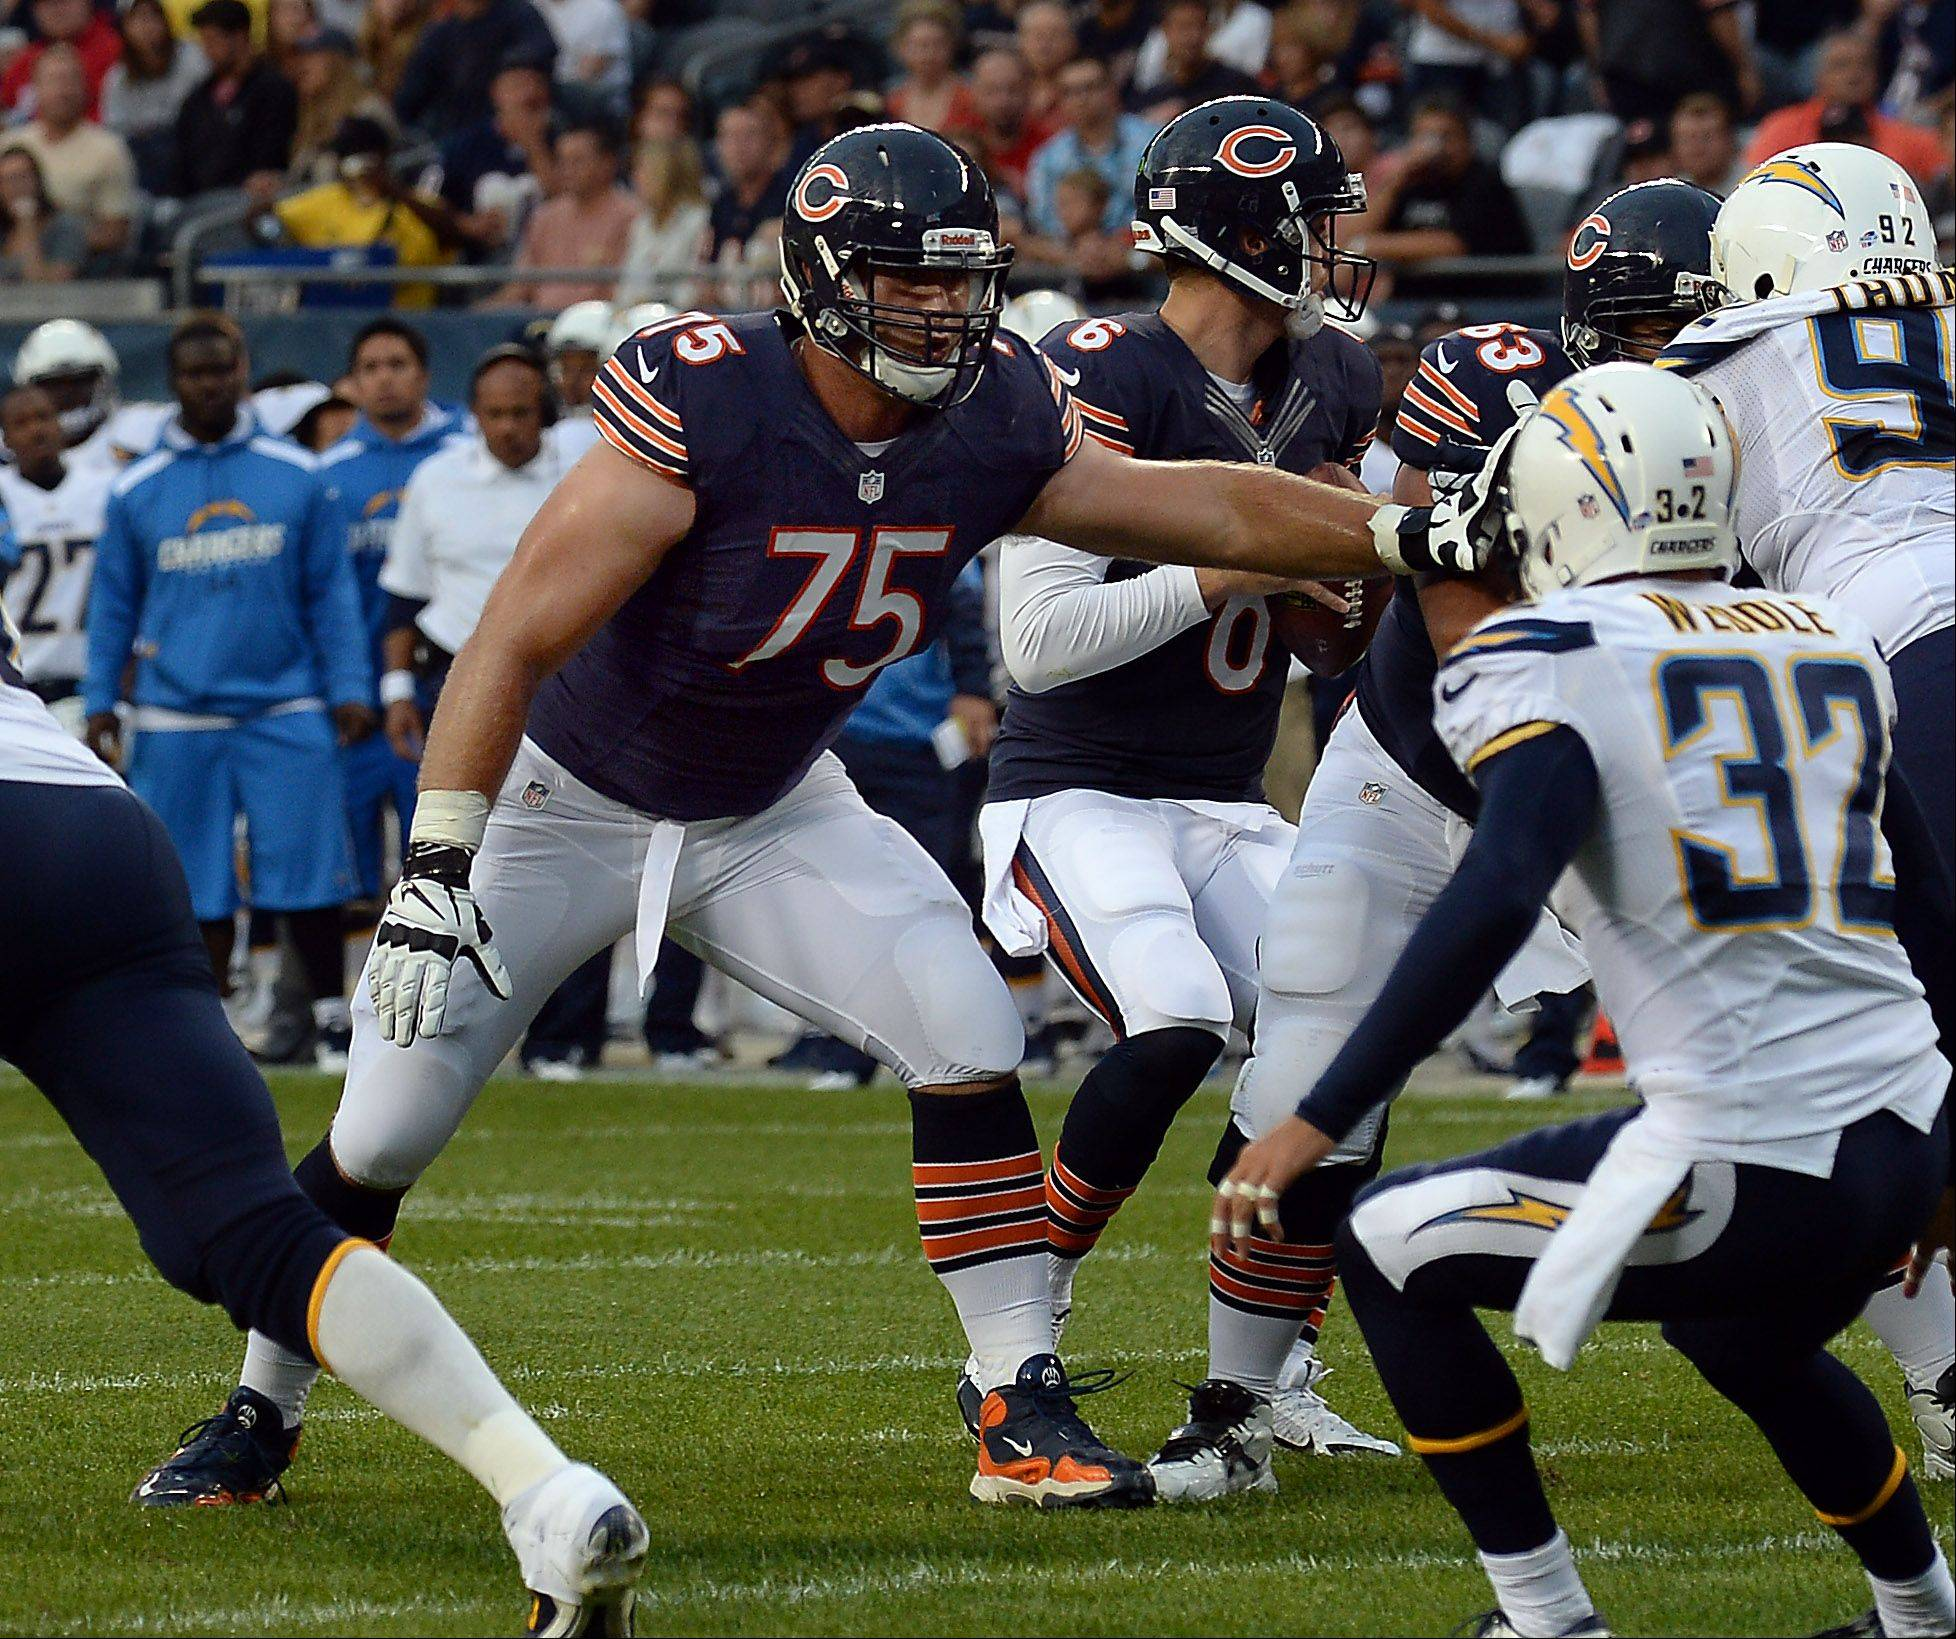 Mark Welsh/mwelsh@dailyherald.com � Chicago Bears Kyle Long protects quarterback Jay Cutler as the Chargers defense rushes in the preseason matchup at Soldier Field. �